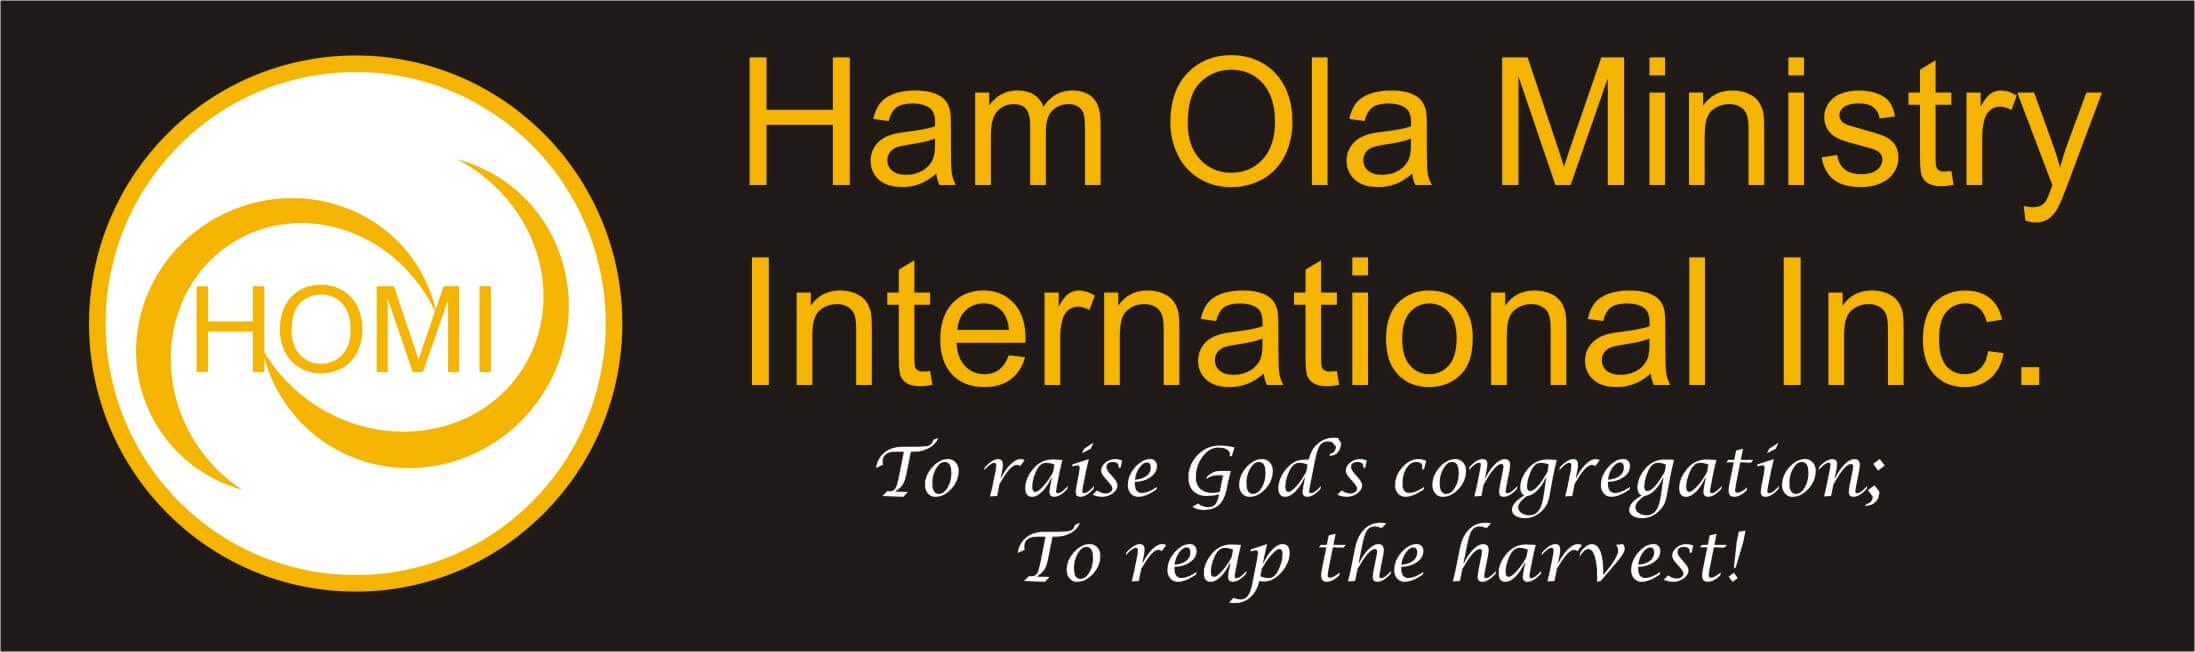 Ham Ola Ministry International Inc